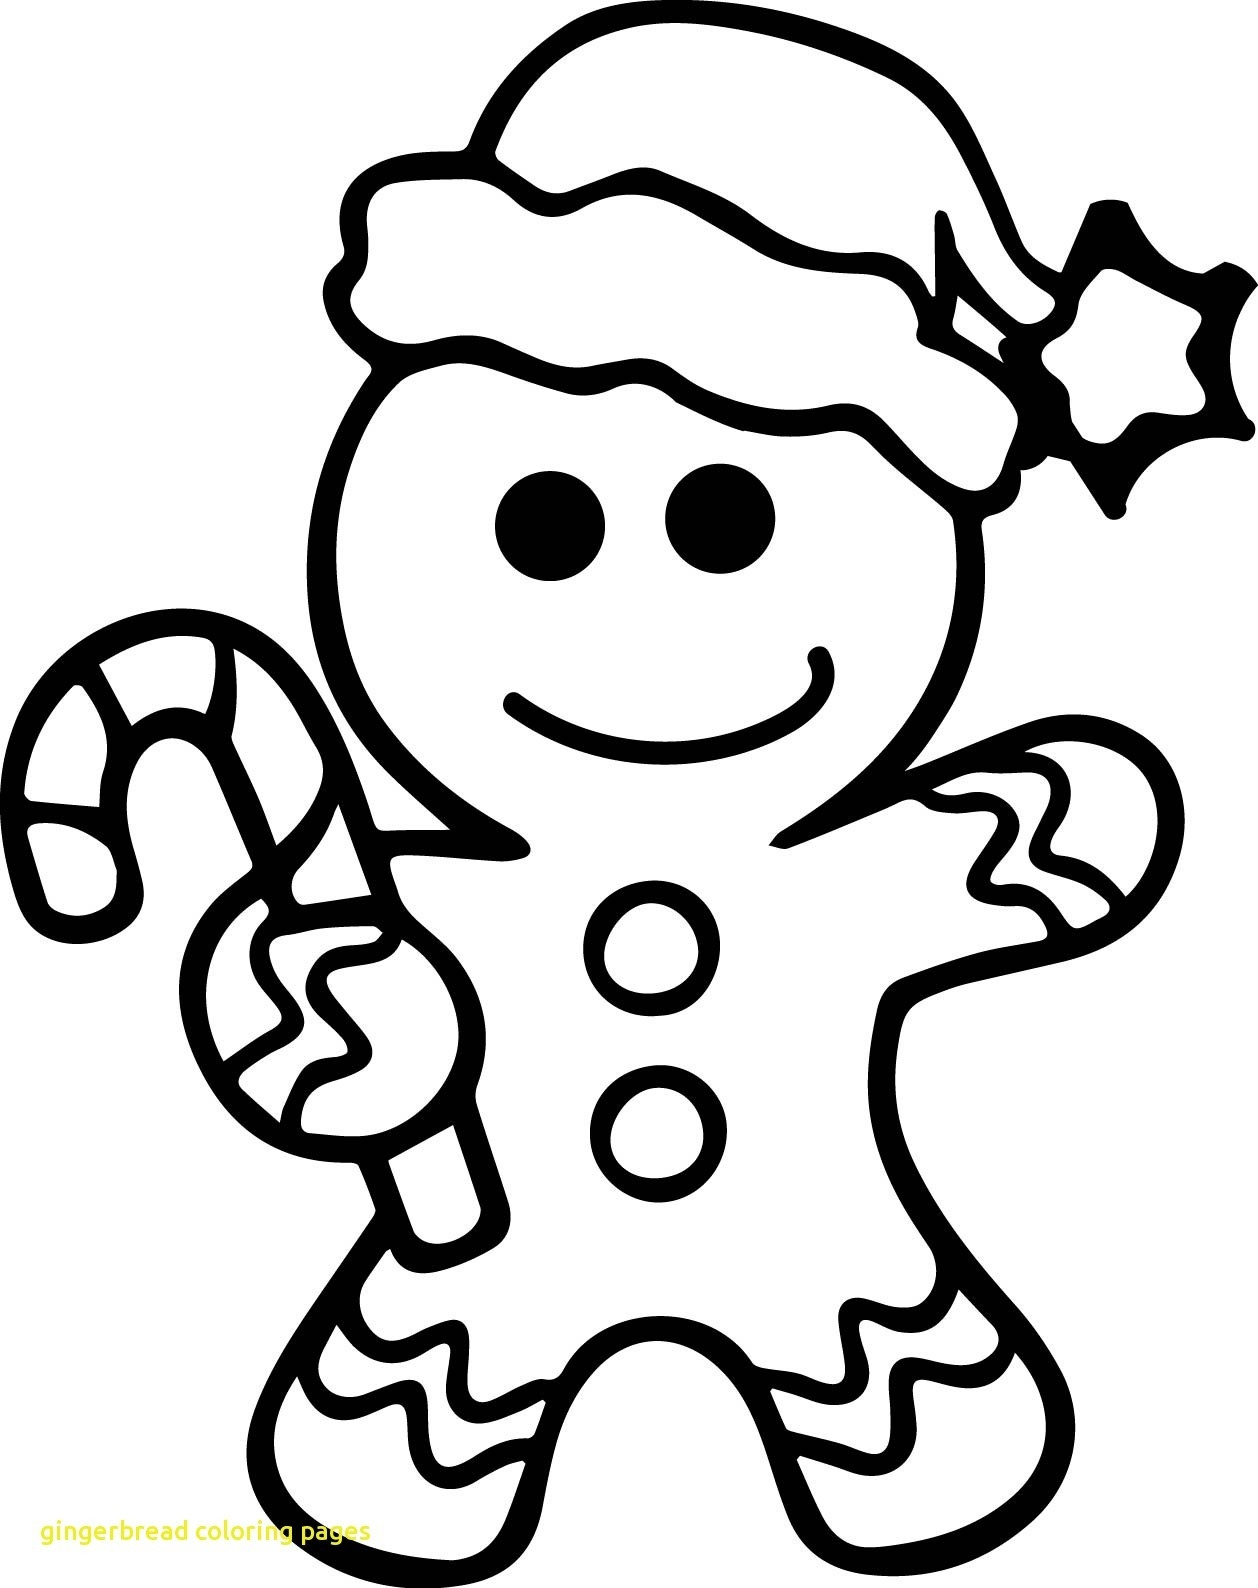 Gingerbread Coloring Pages Christmas Gingerbread Coloring Pages Beepmunk